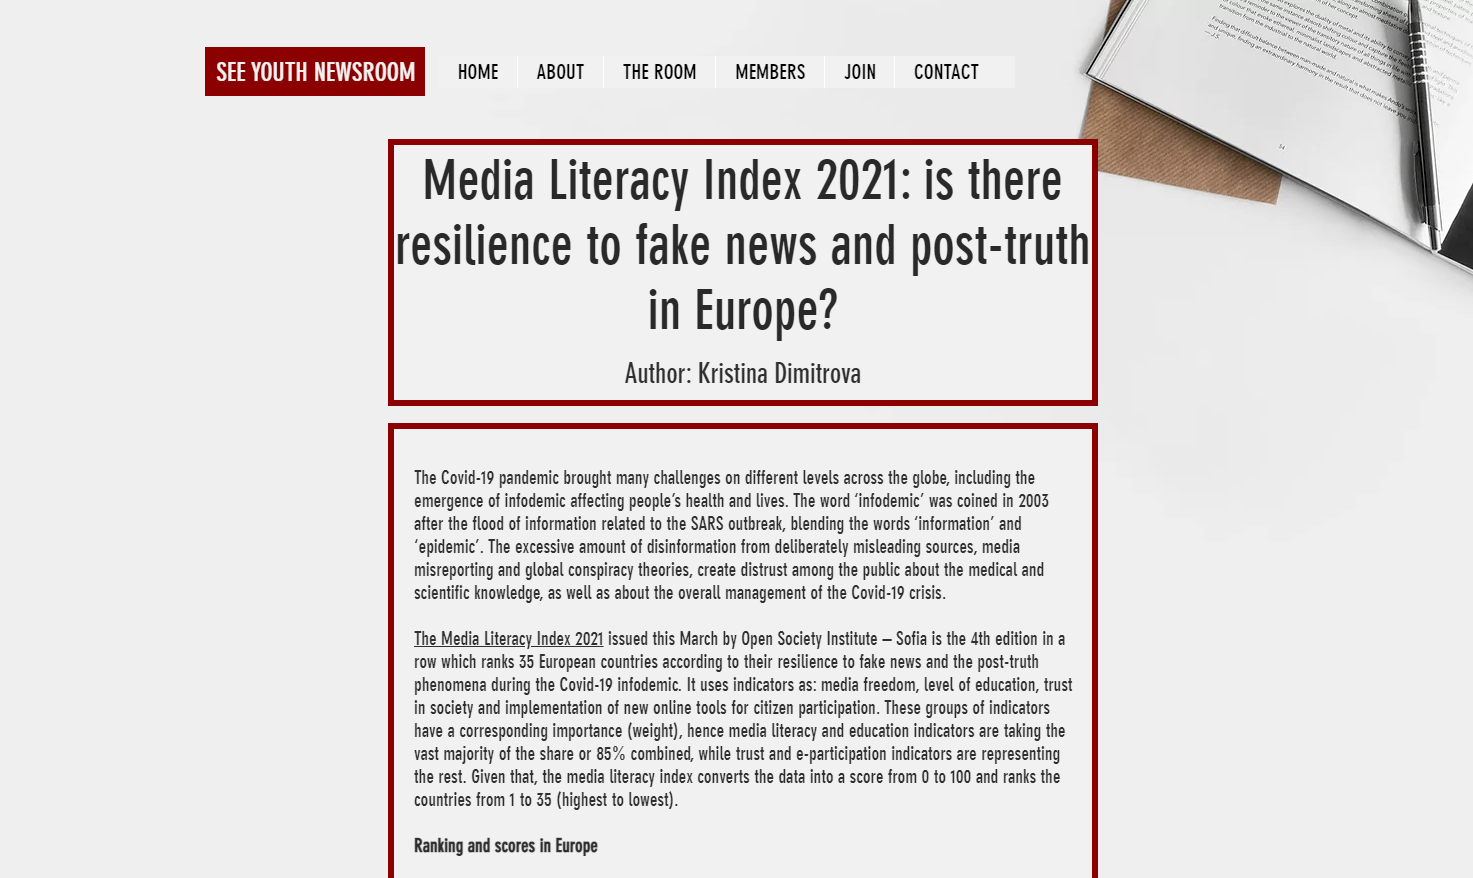 Media Literacy Index 2021: Is There Resilience To Fake News And Post-truth In Europe?